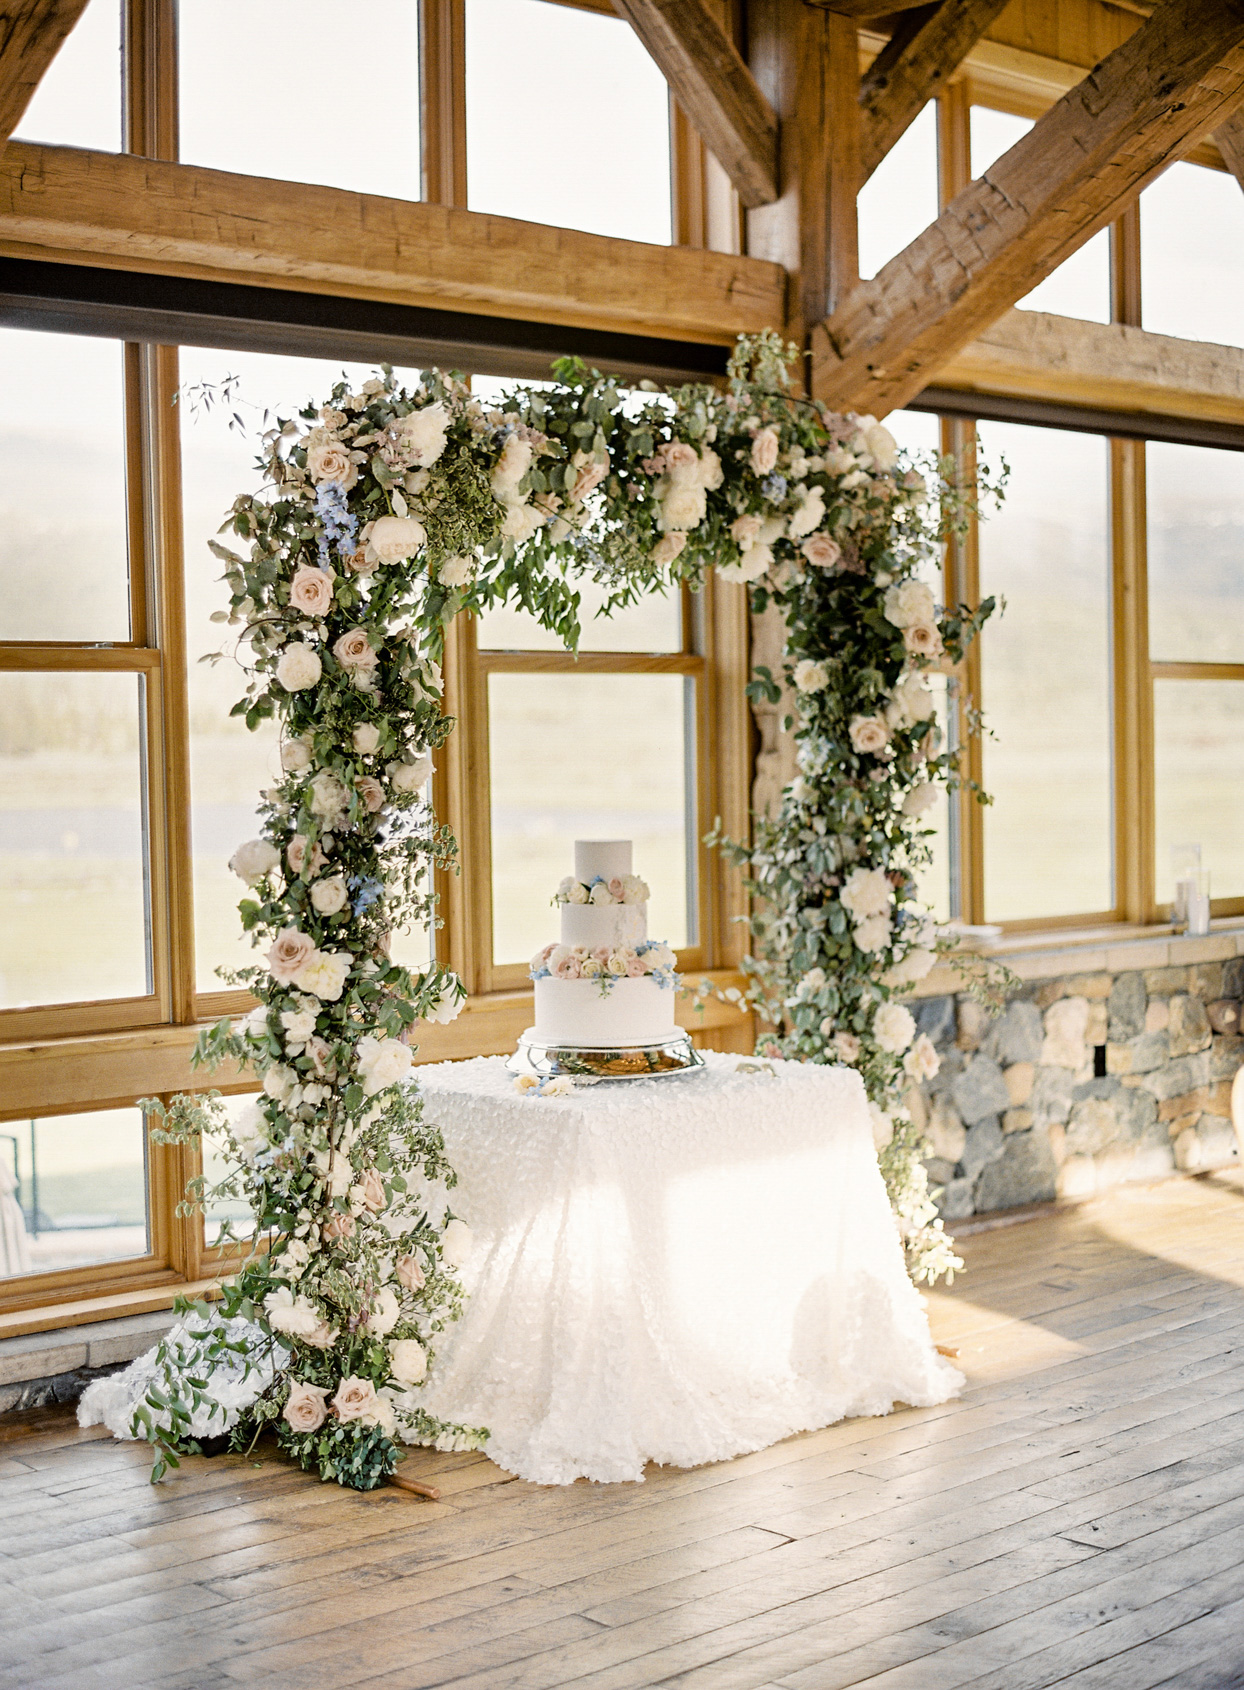 wedding cake on white table under floral arch